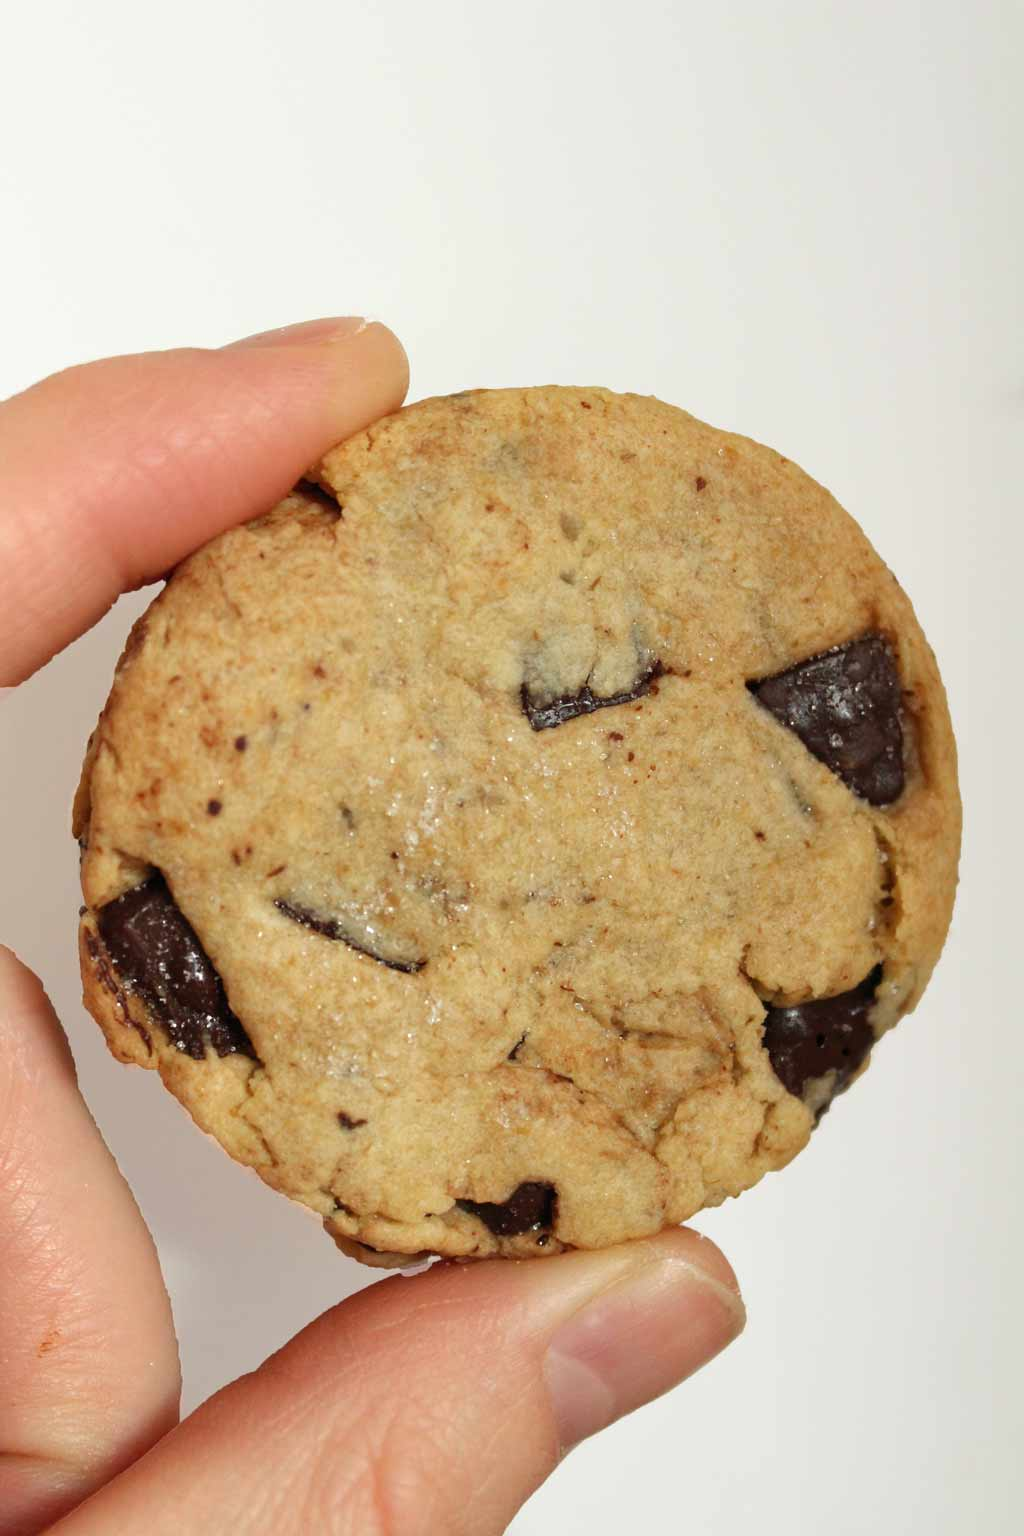 Hand holding shortbread cookie